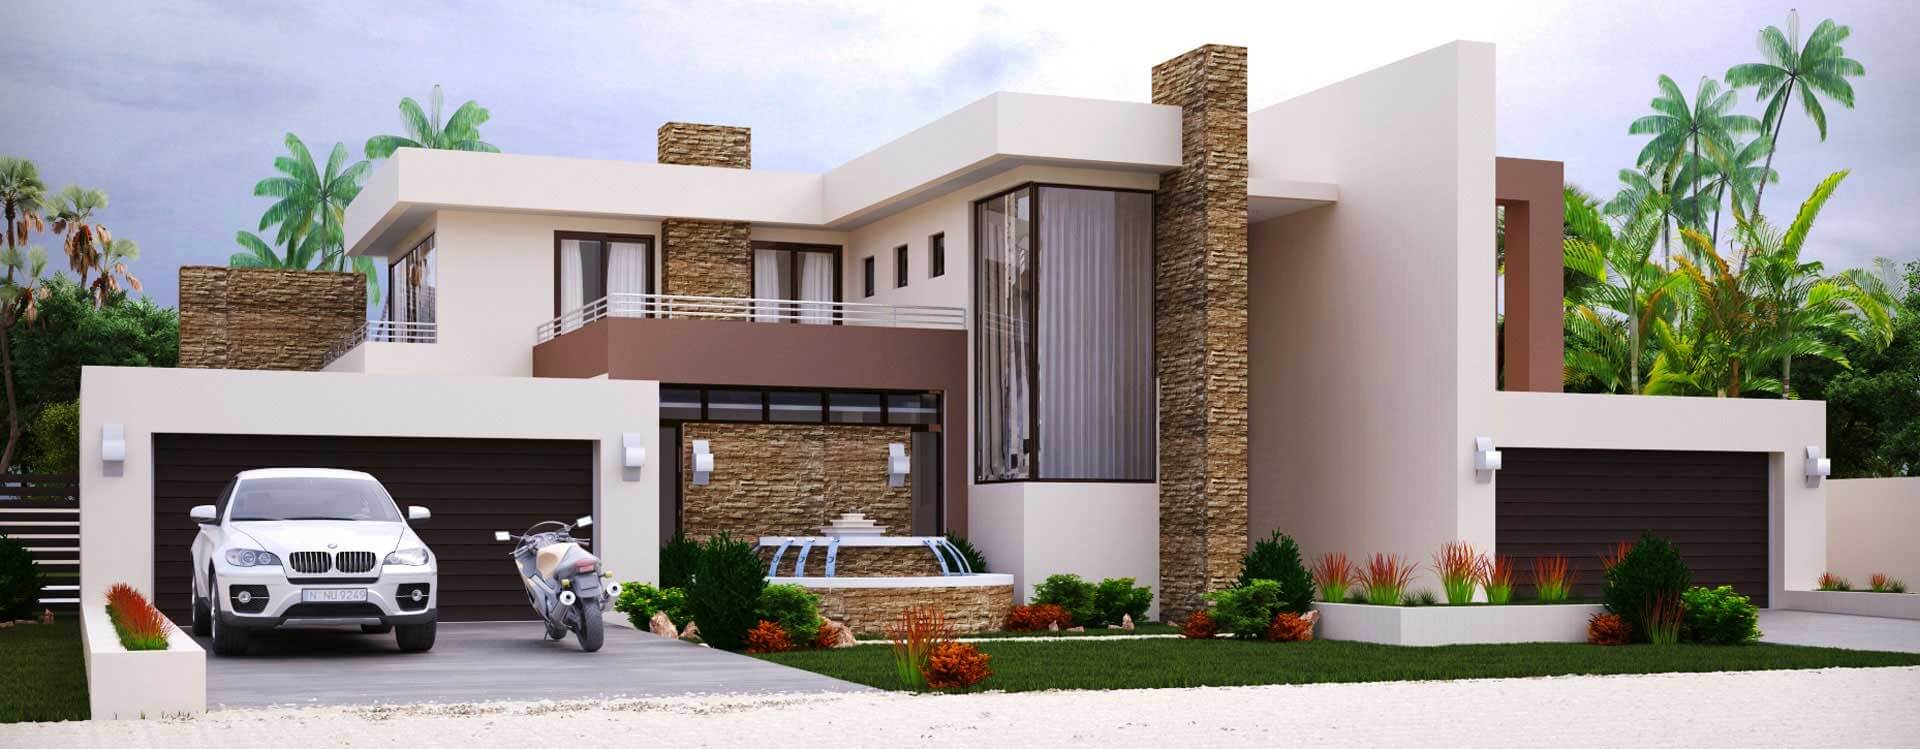 House design plan - Modern Style House Plan 4 Bedroom Double Storey Floor Plans Home Design